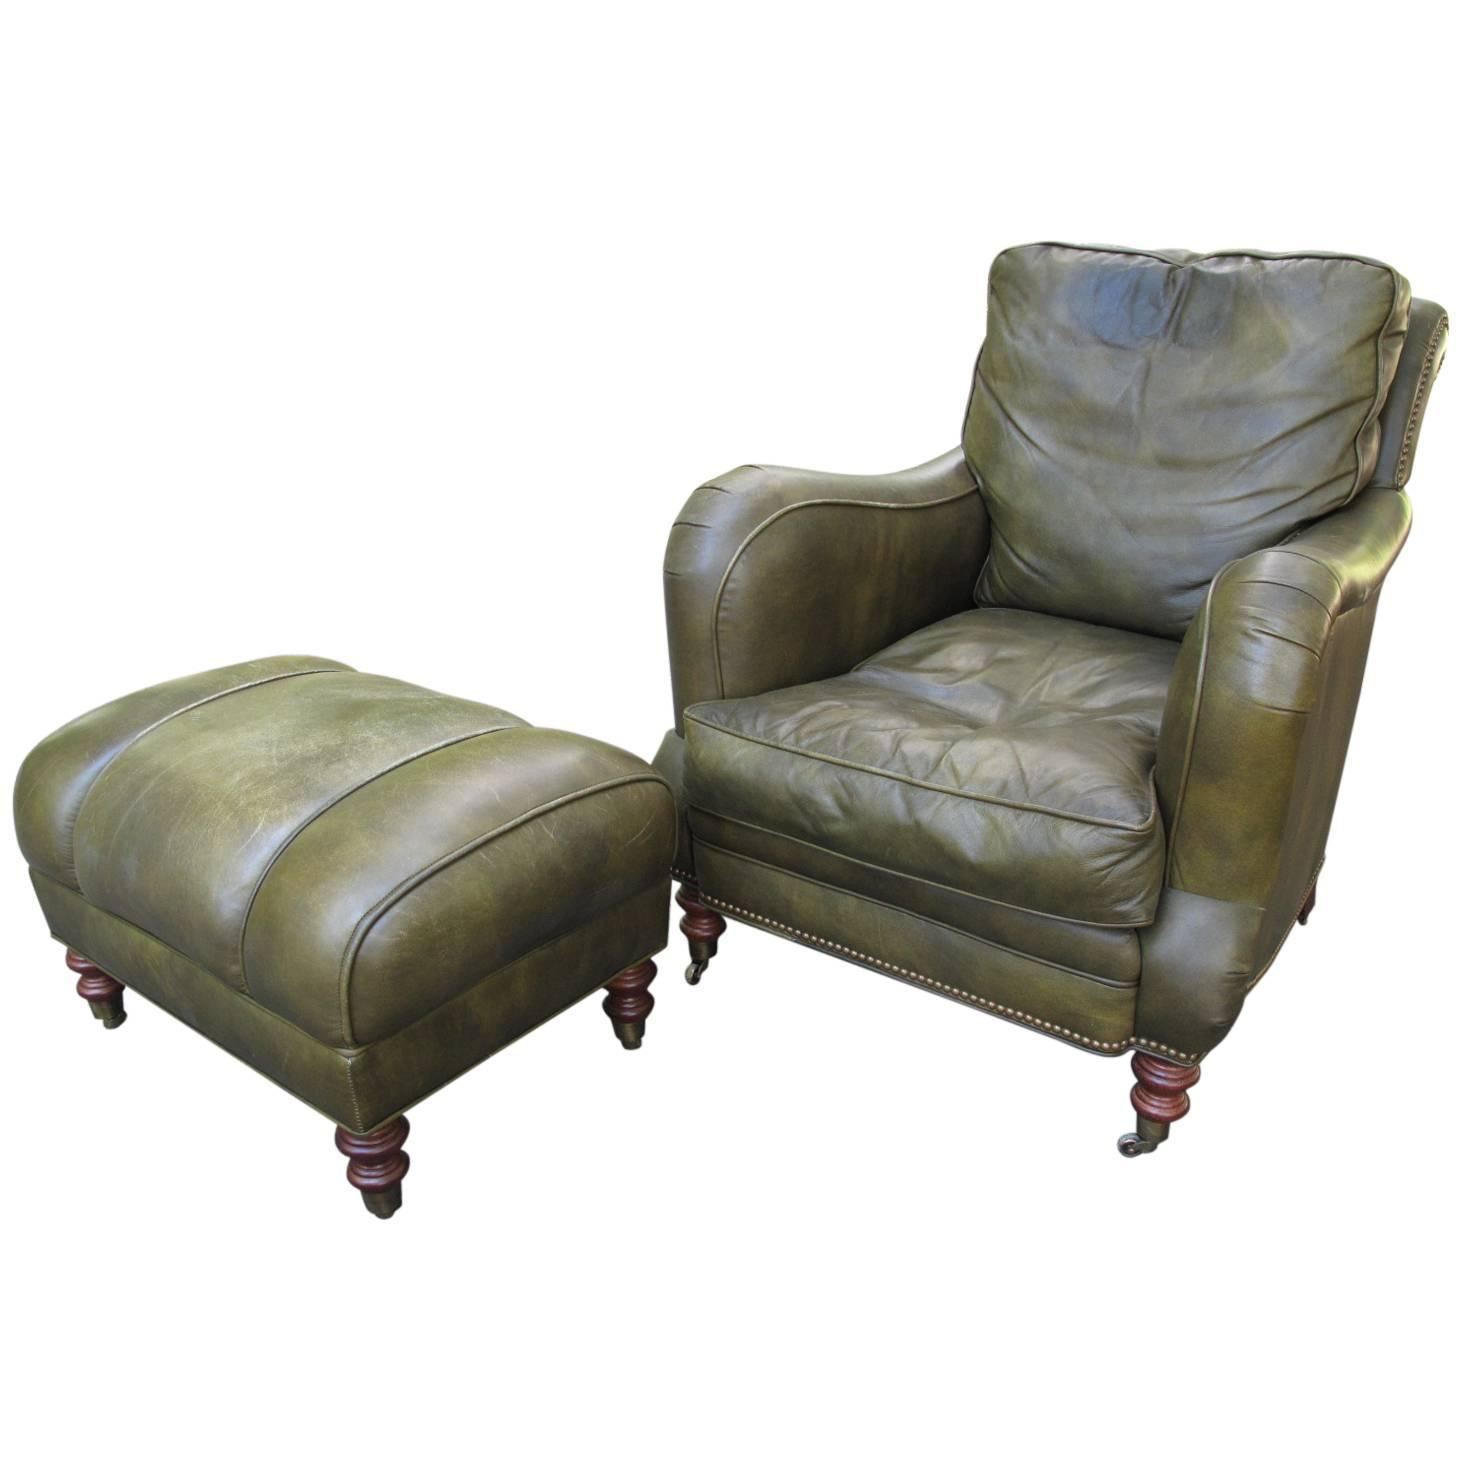 leather chair with ottoman z